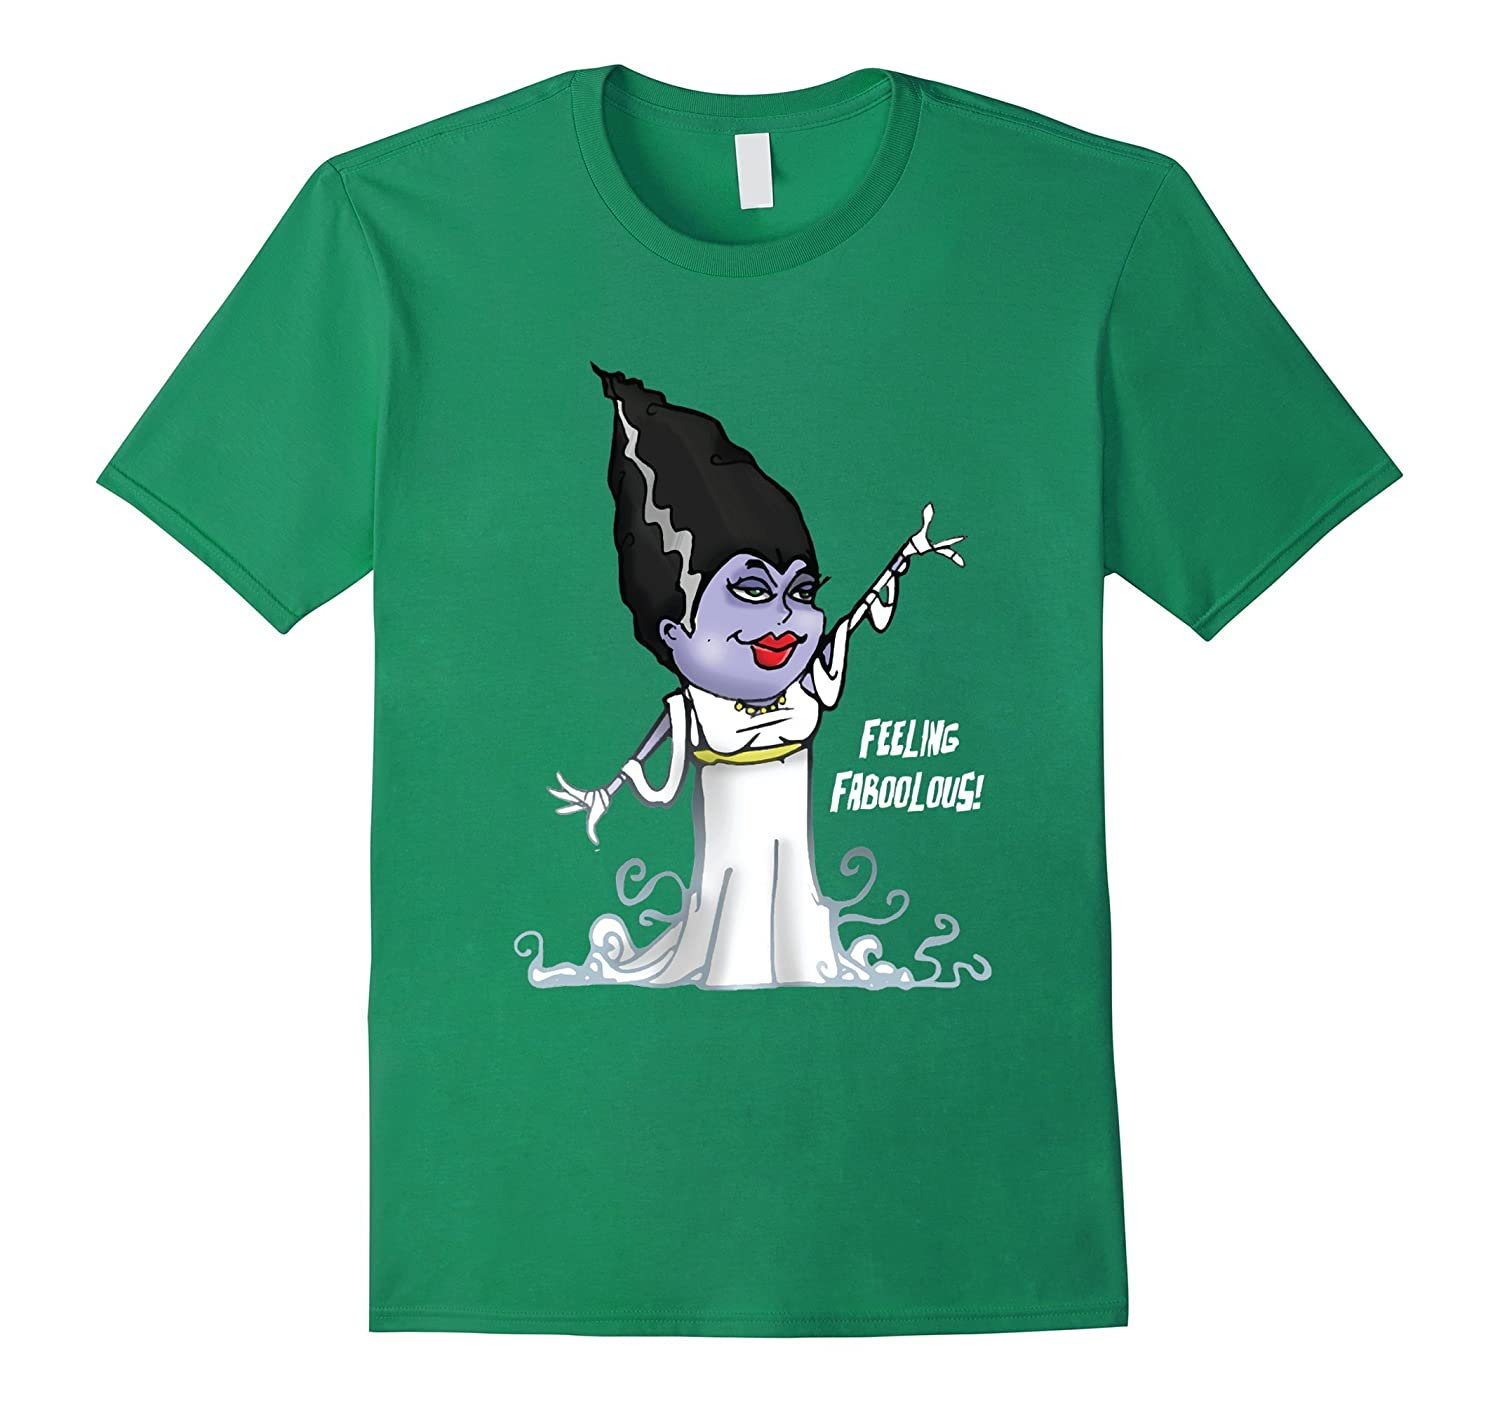 Funny Halloween T-Shirt with a scary Witch and an evil grin-T-Shirt